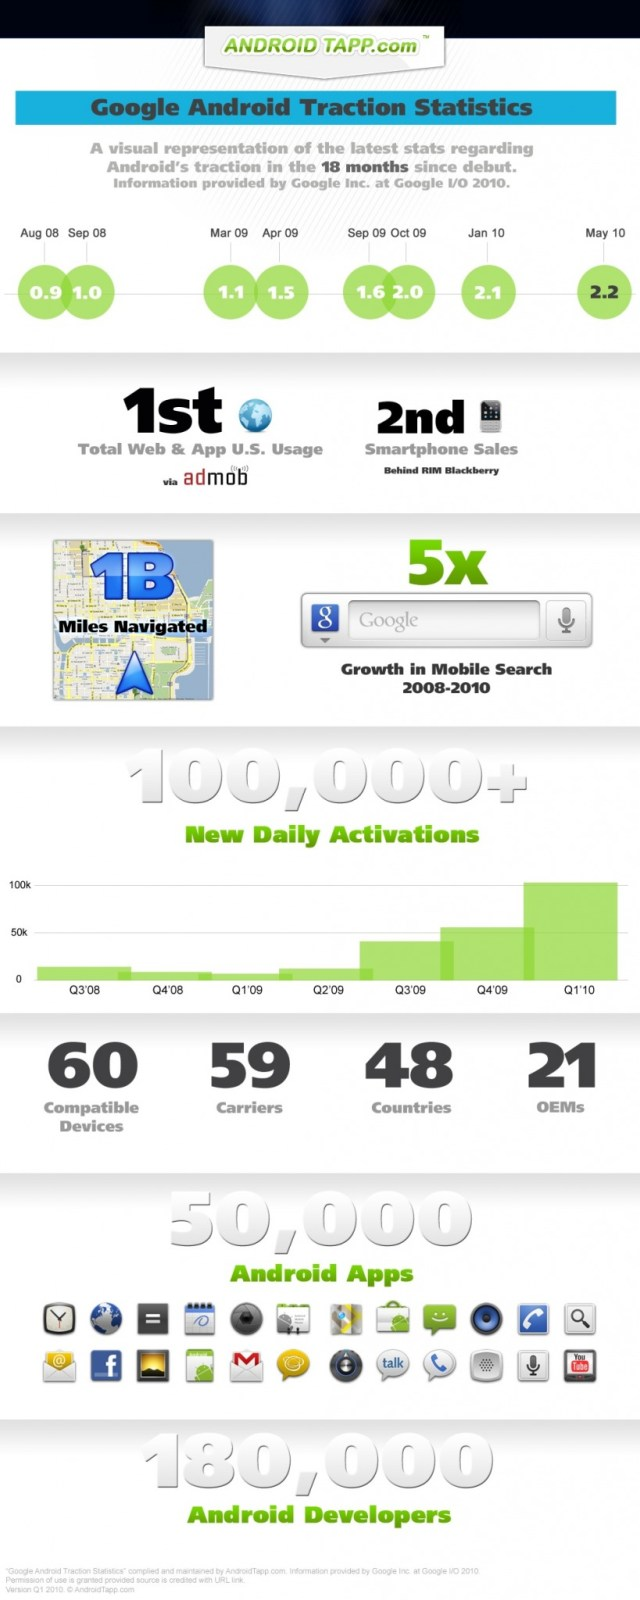 Google Android Traction Statistics by AndroidTapp.com